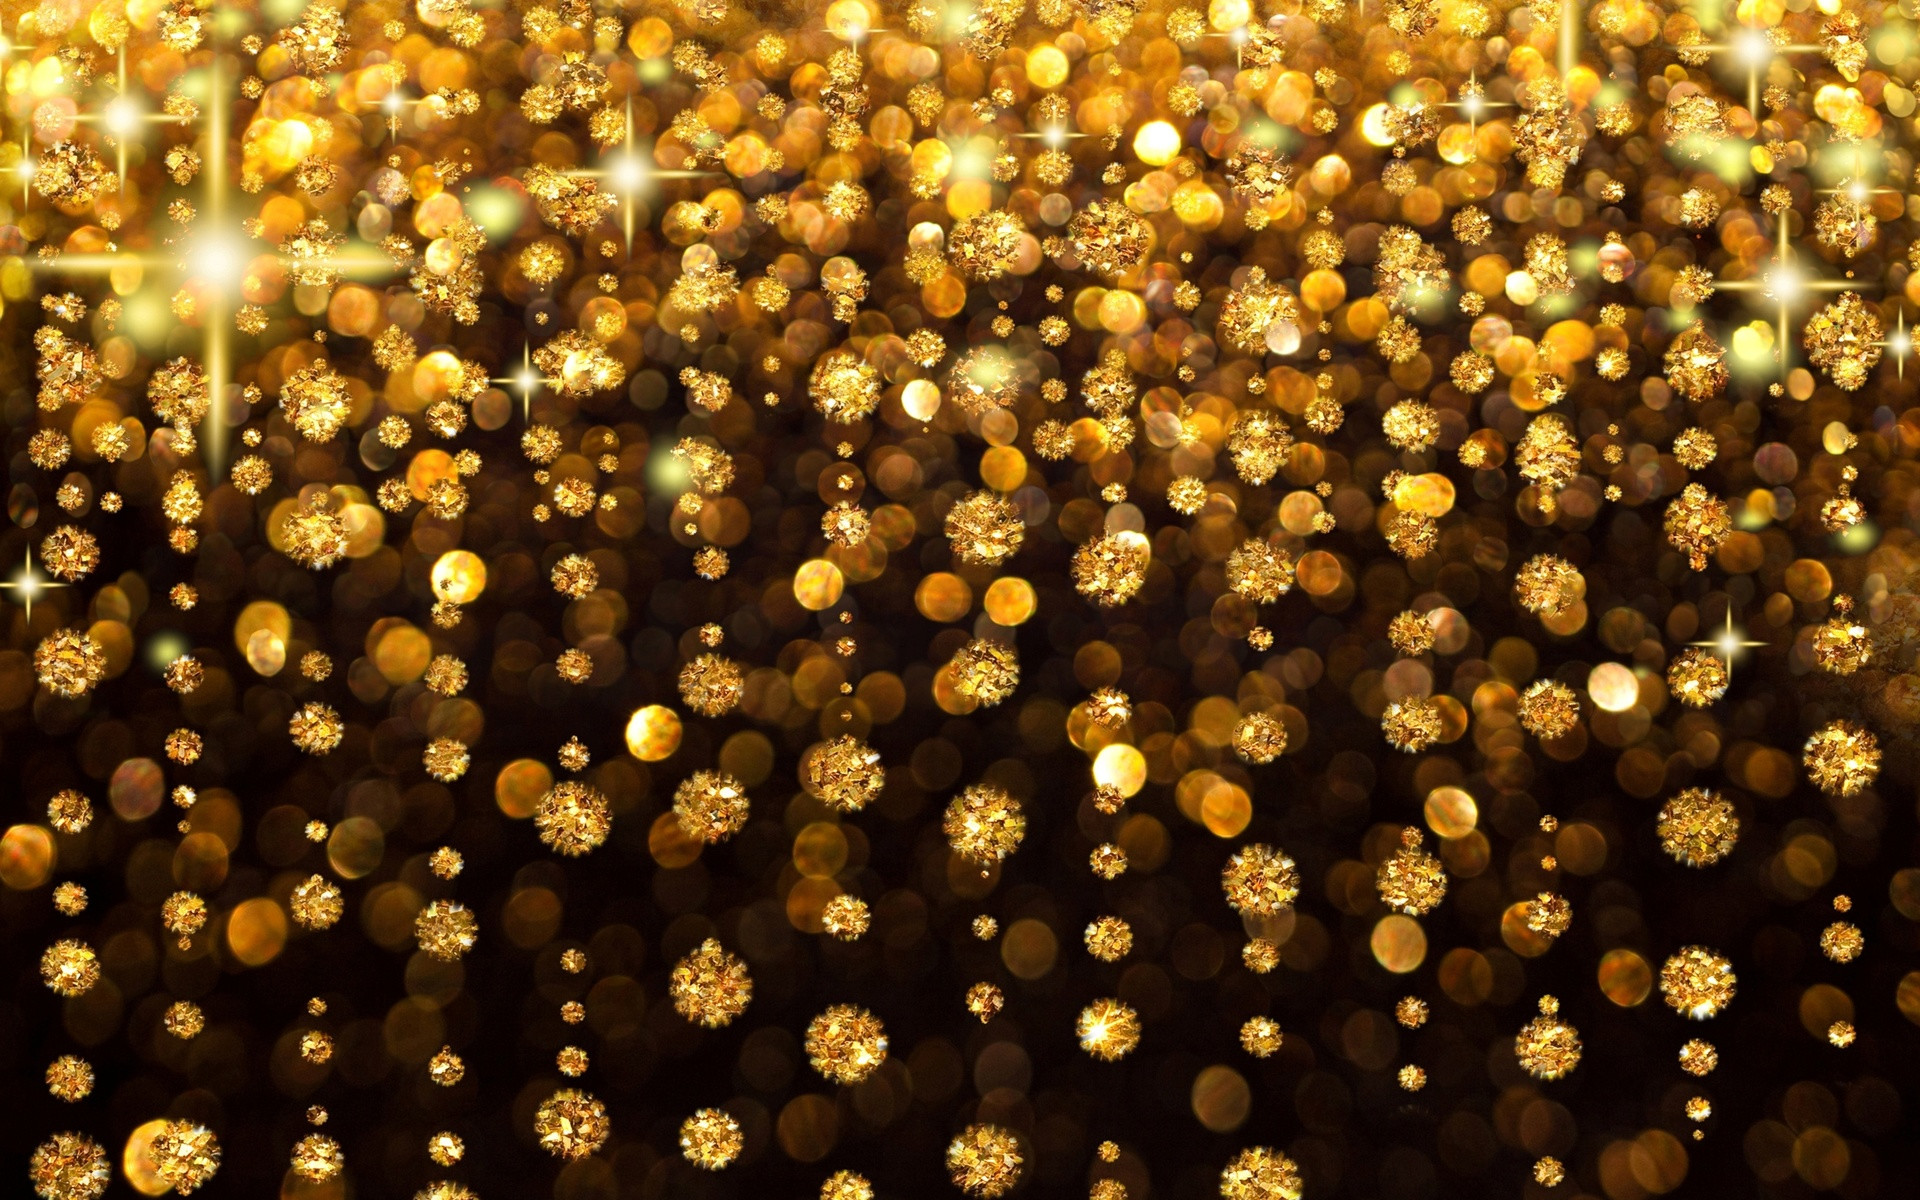 1920x1200 Gold HD Wallpapers | Backgrounds - Wallpaper Abyss